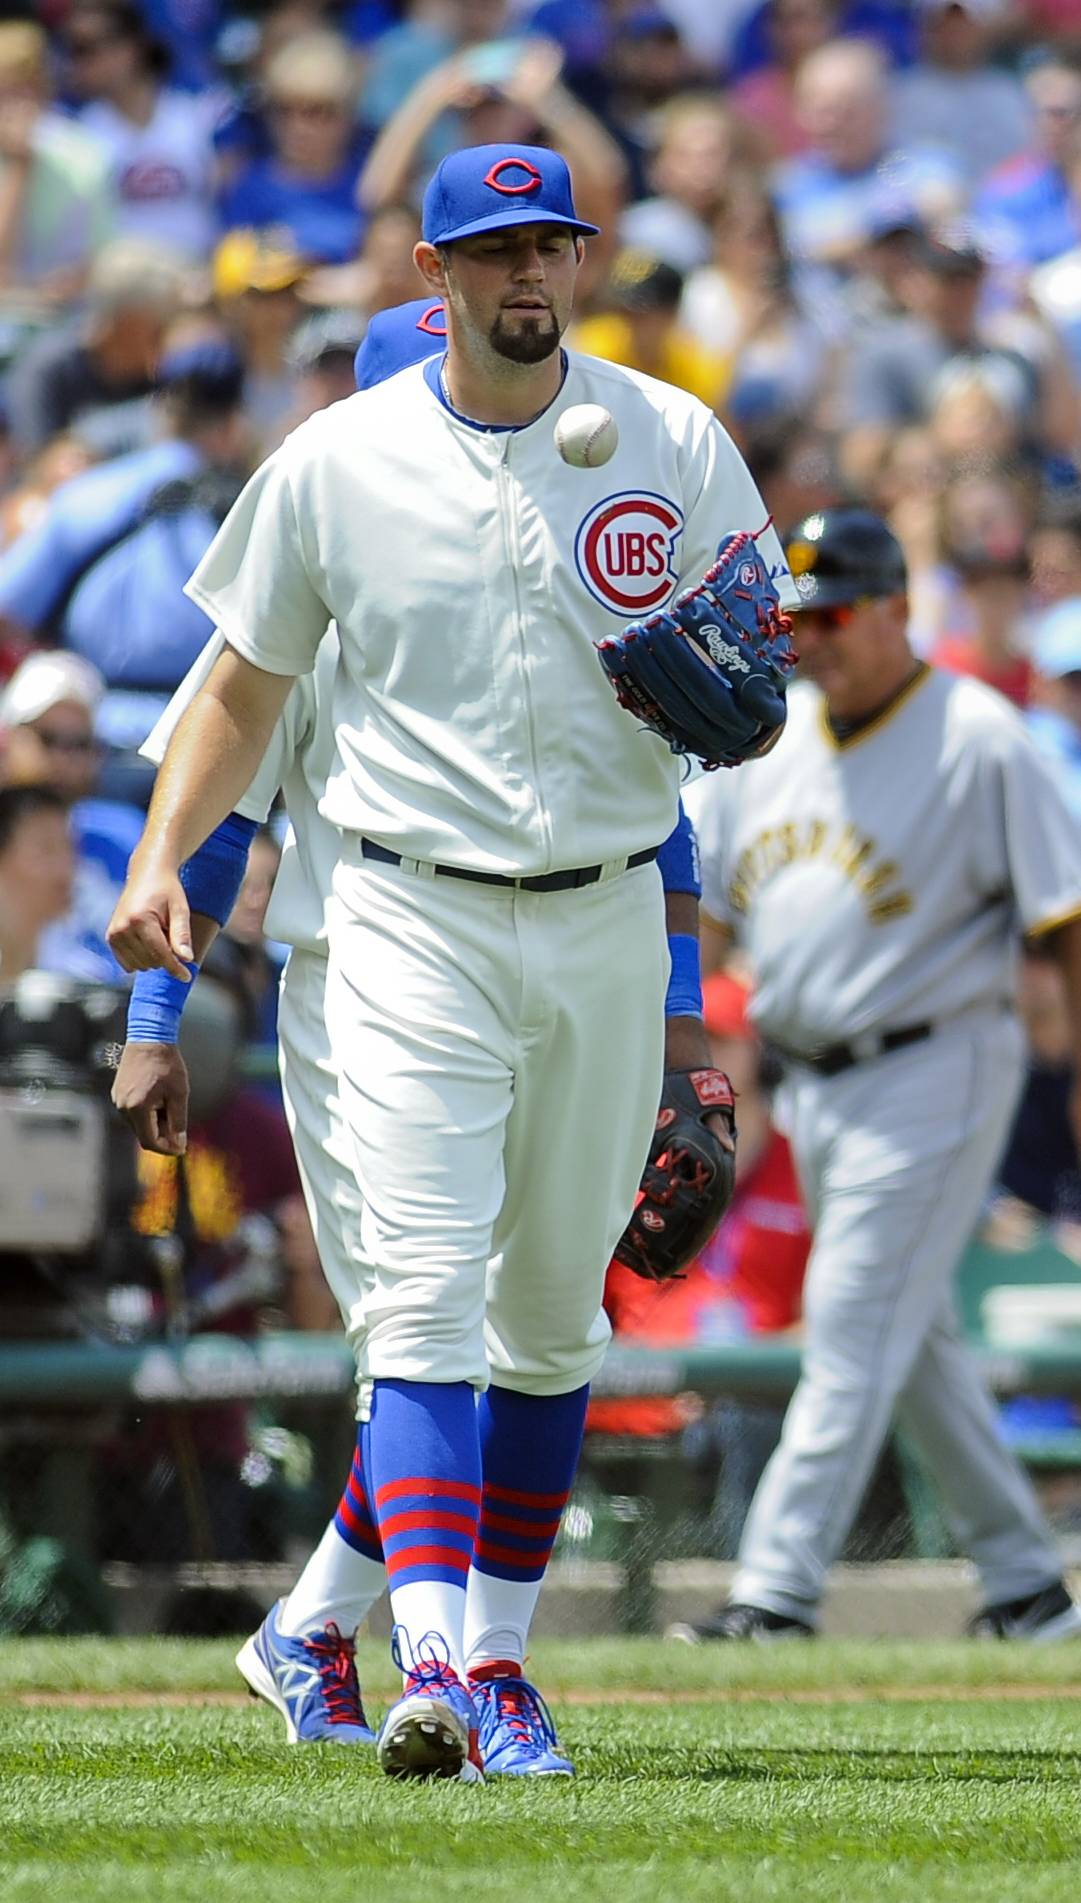 Bunt successful, but not what follows for Cubs